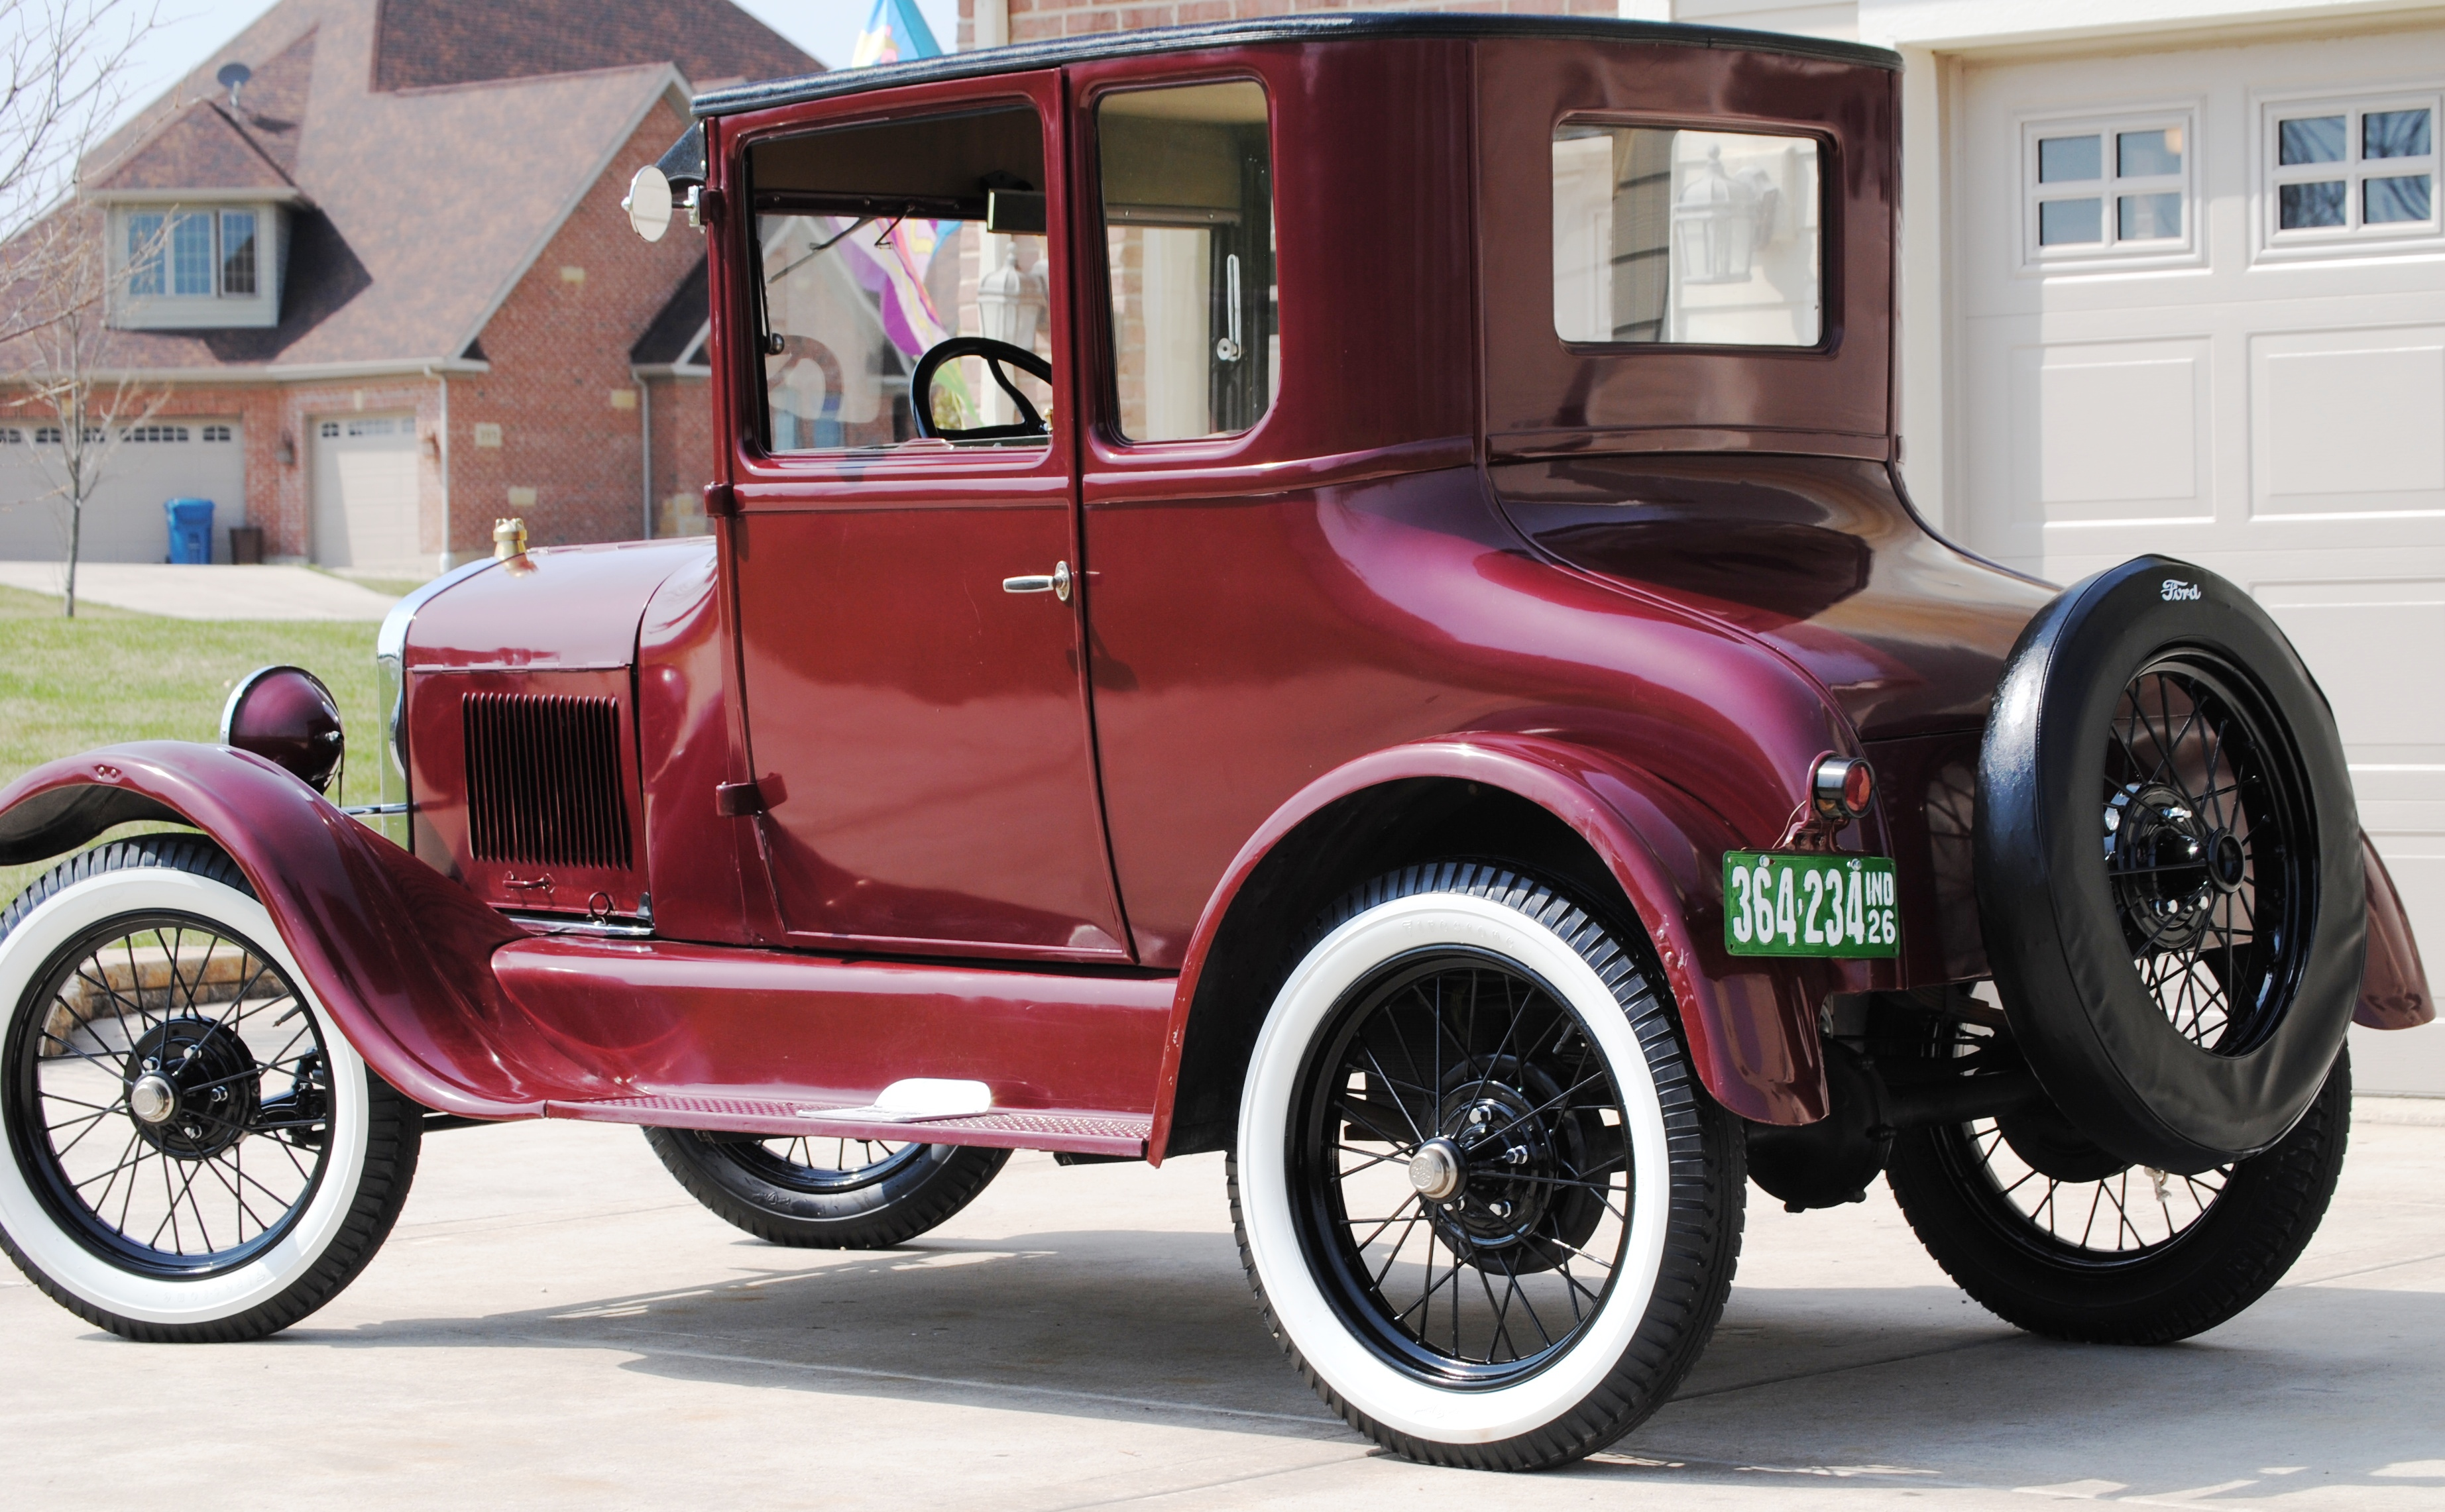 1925 model t ford wiring diagram water pump 3 phase diagrams best library 1926 coupe u2018pinky u2019 oldmotorsguy com a headlight